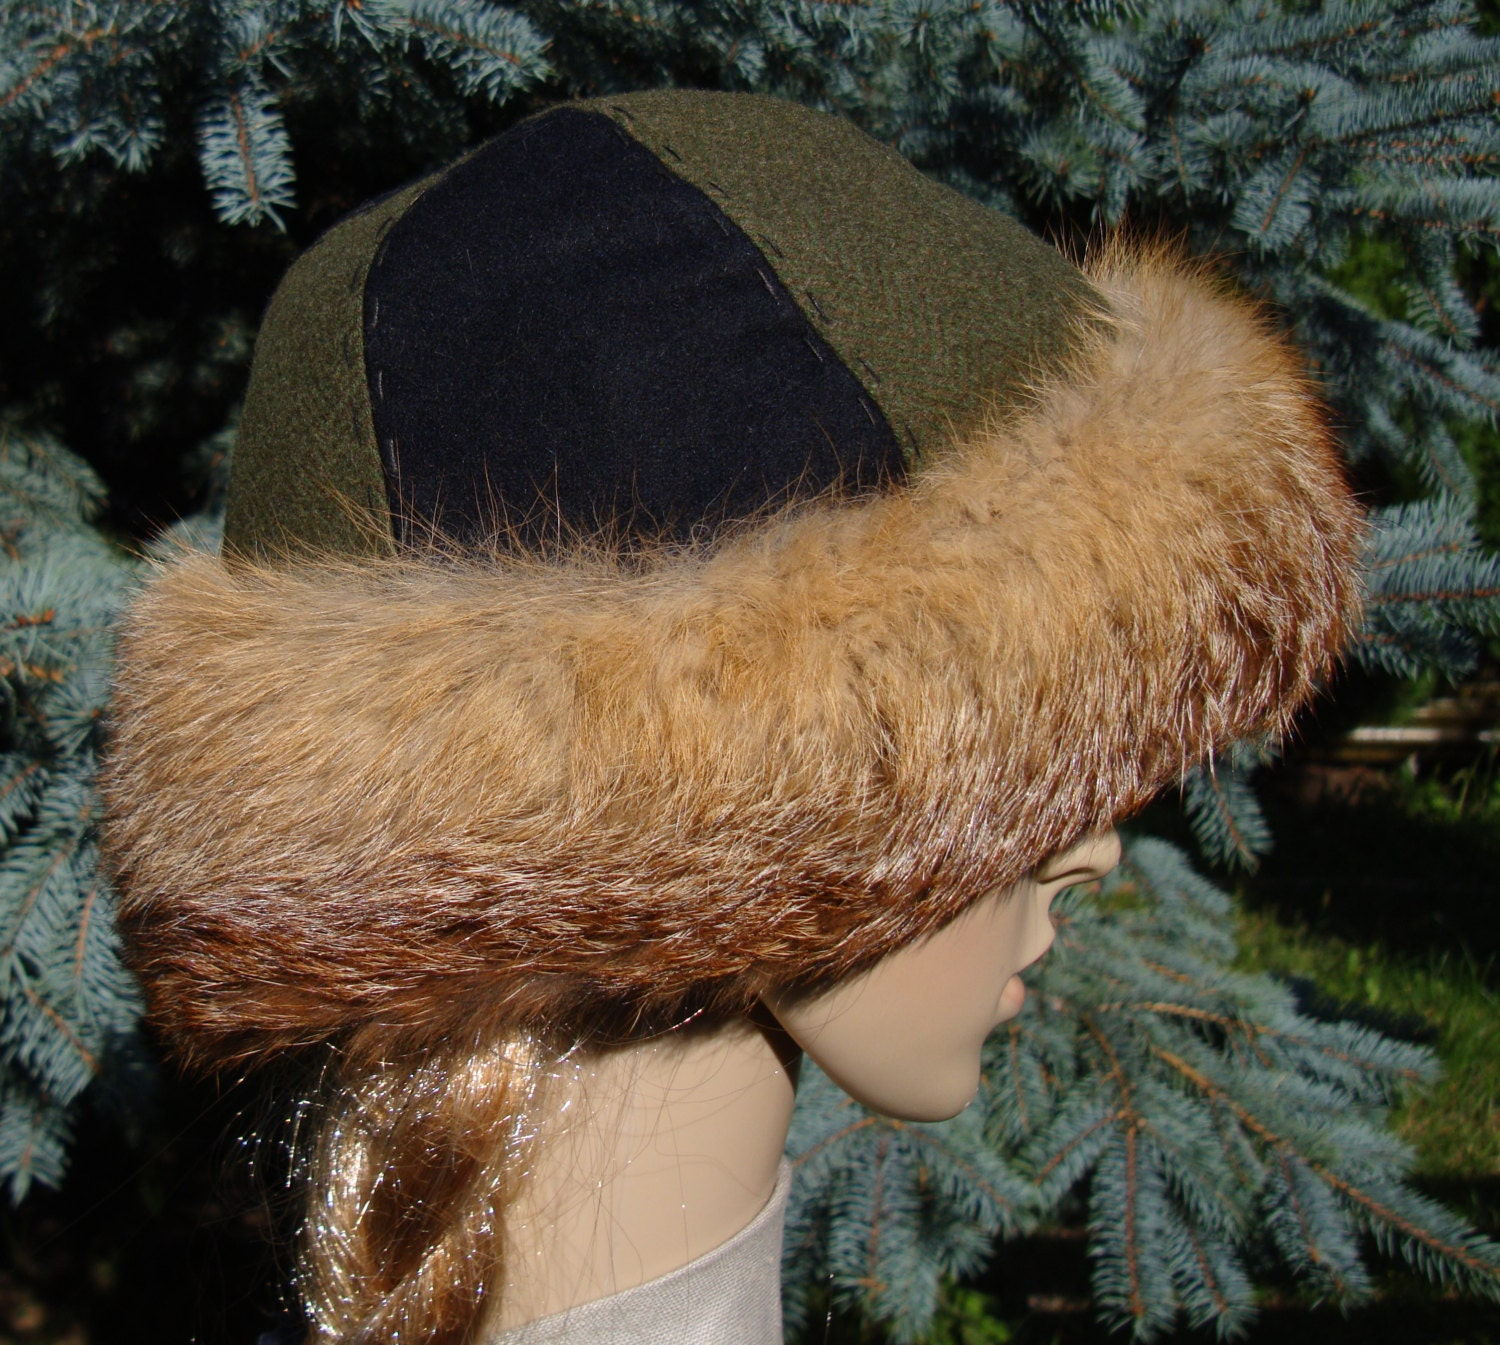 b8ac7256 Early medieval hat, round hat form Birka with fox fur. Viking, Middle Ages,  2 colored hat cap perfect for historical reenactors of Vikings